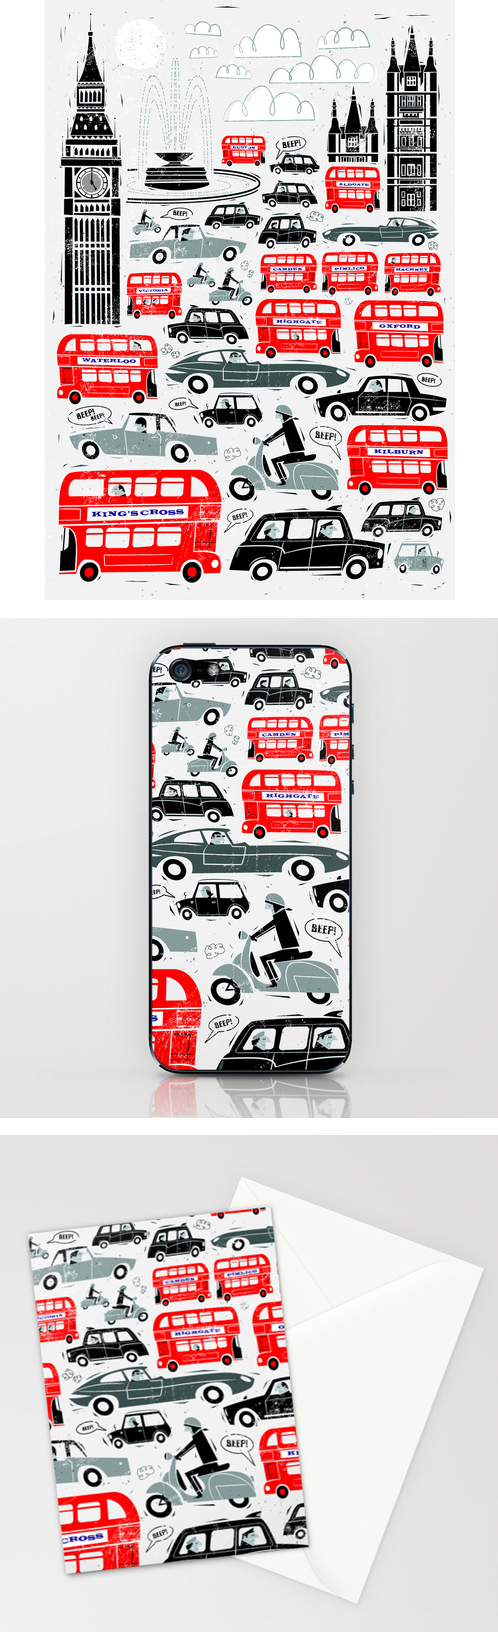 London Traffic Peter Donnelly Scooter Vespa Prints iphone cases